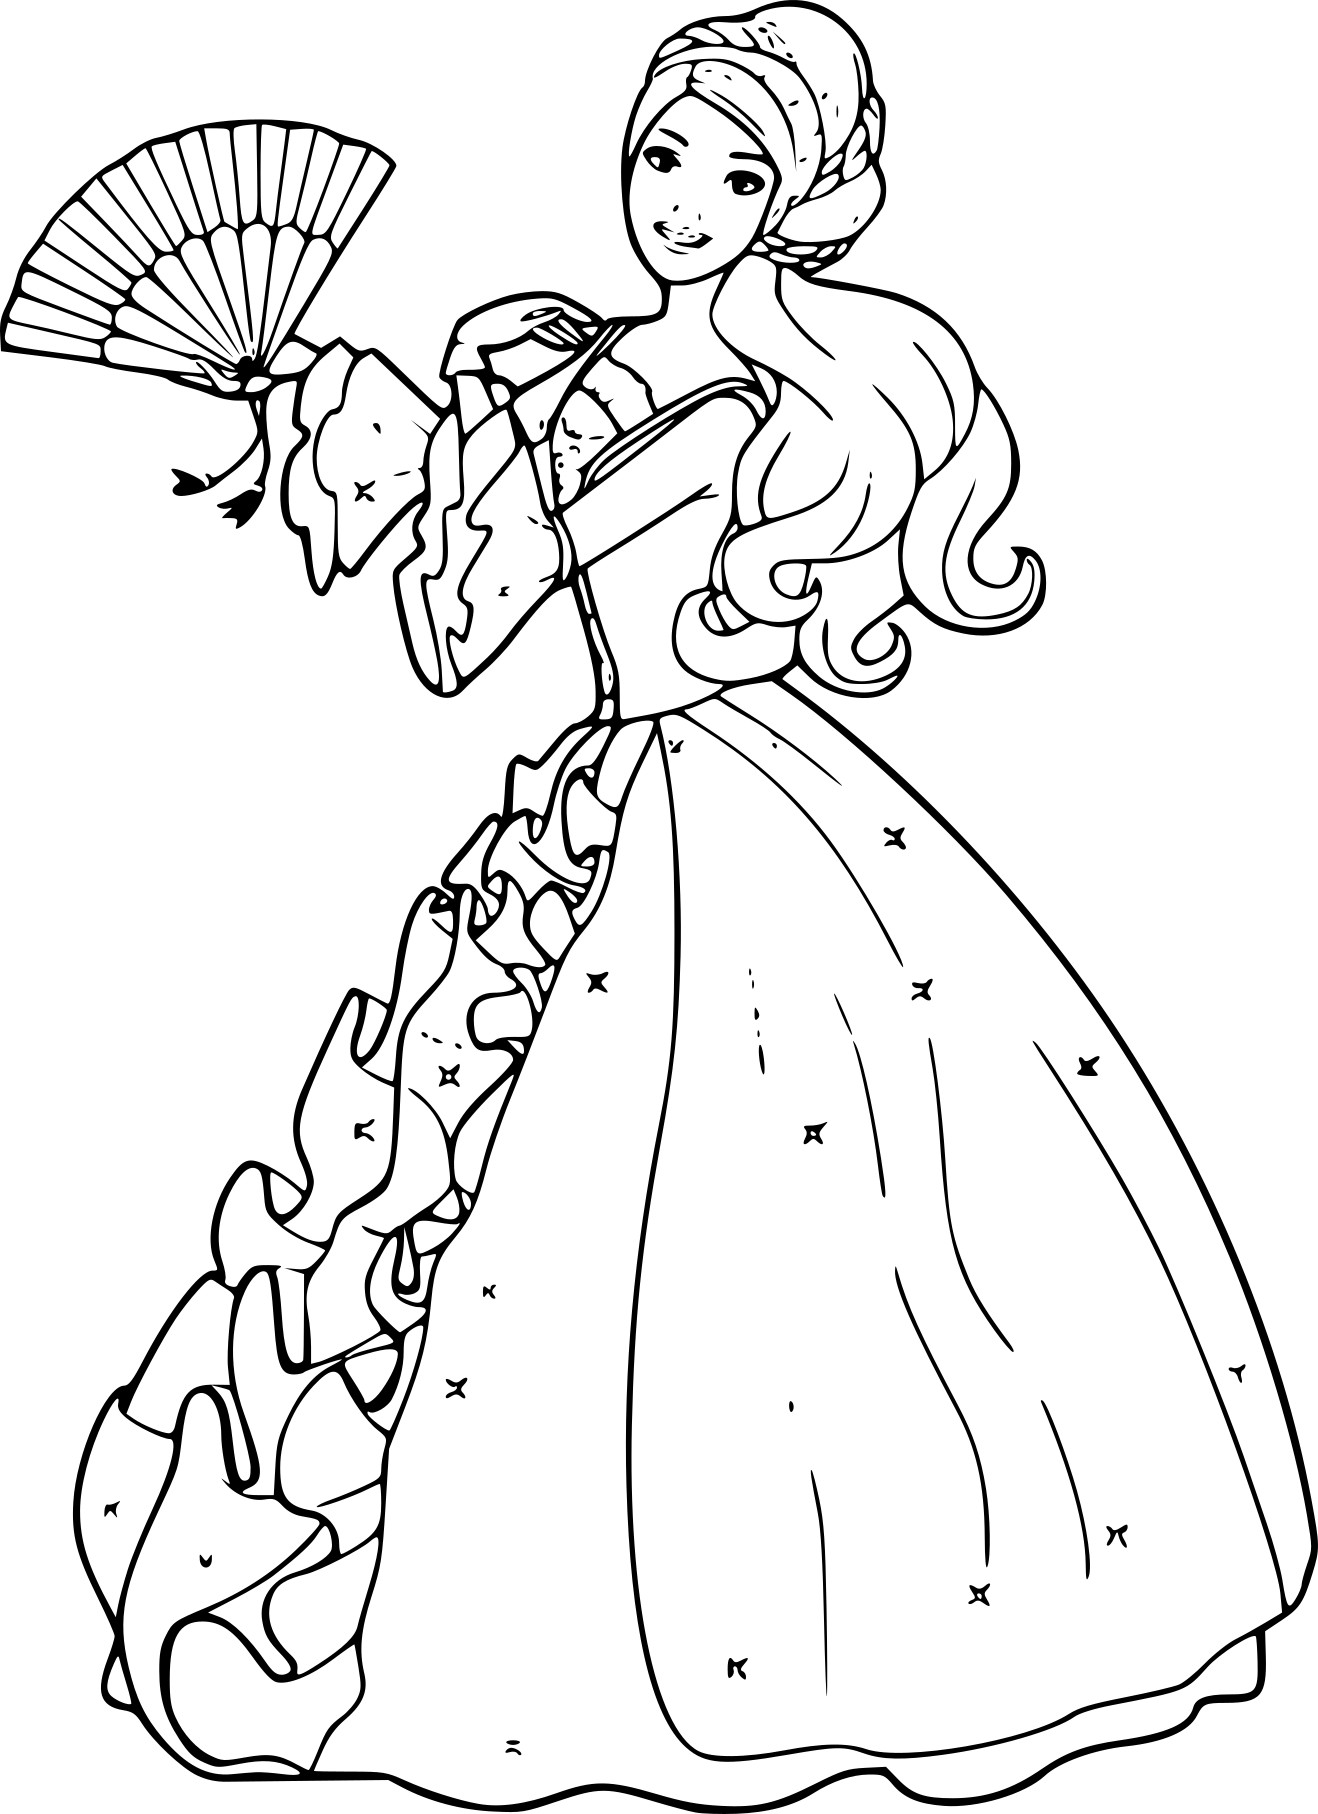 Coloriage barbie princesse imprimer gratuit - Barbie princesse coloriage ...